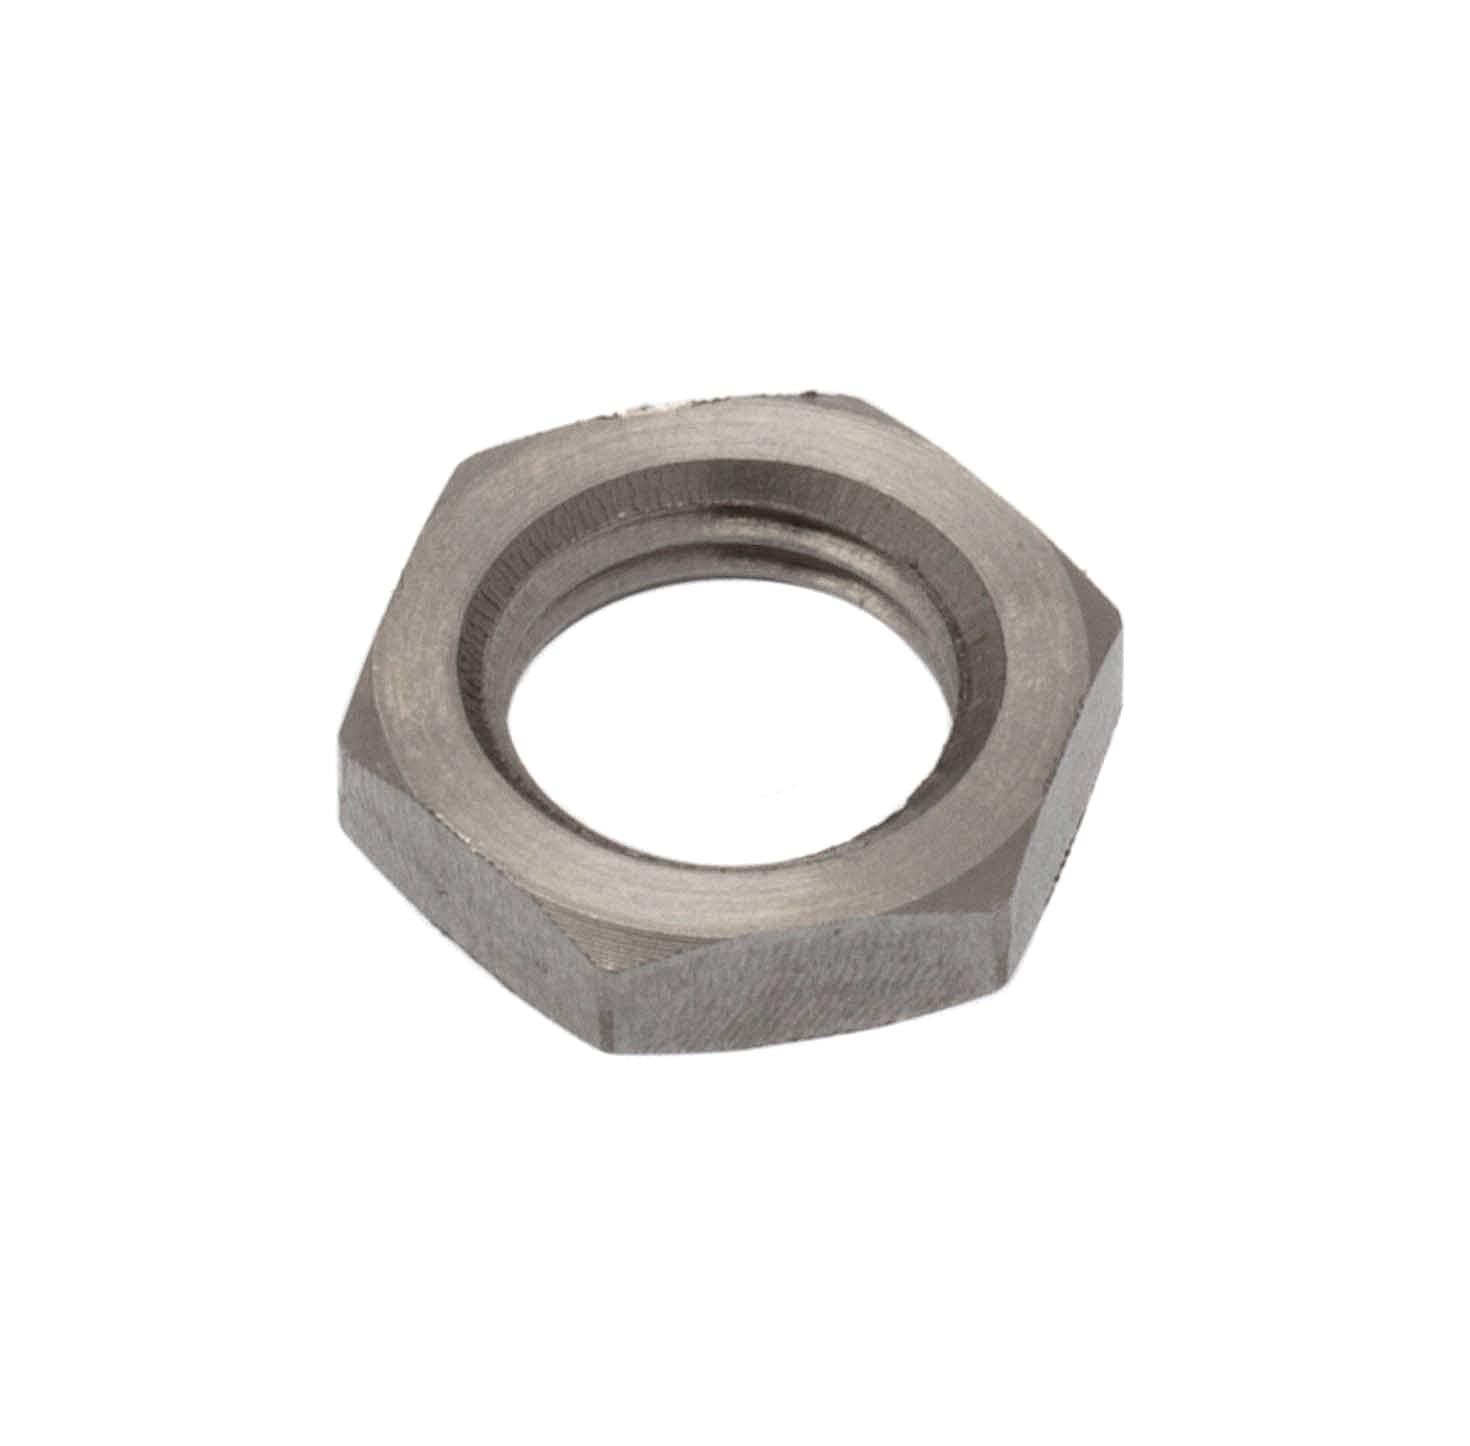 Stainless Steel AMPG Z0218 Stainless Hex Panel Nut